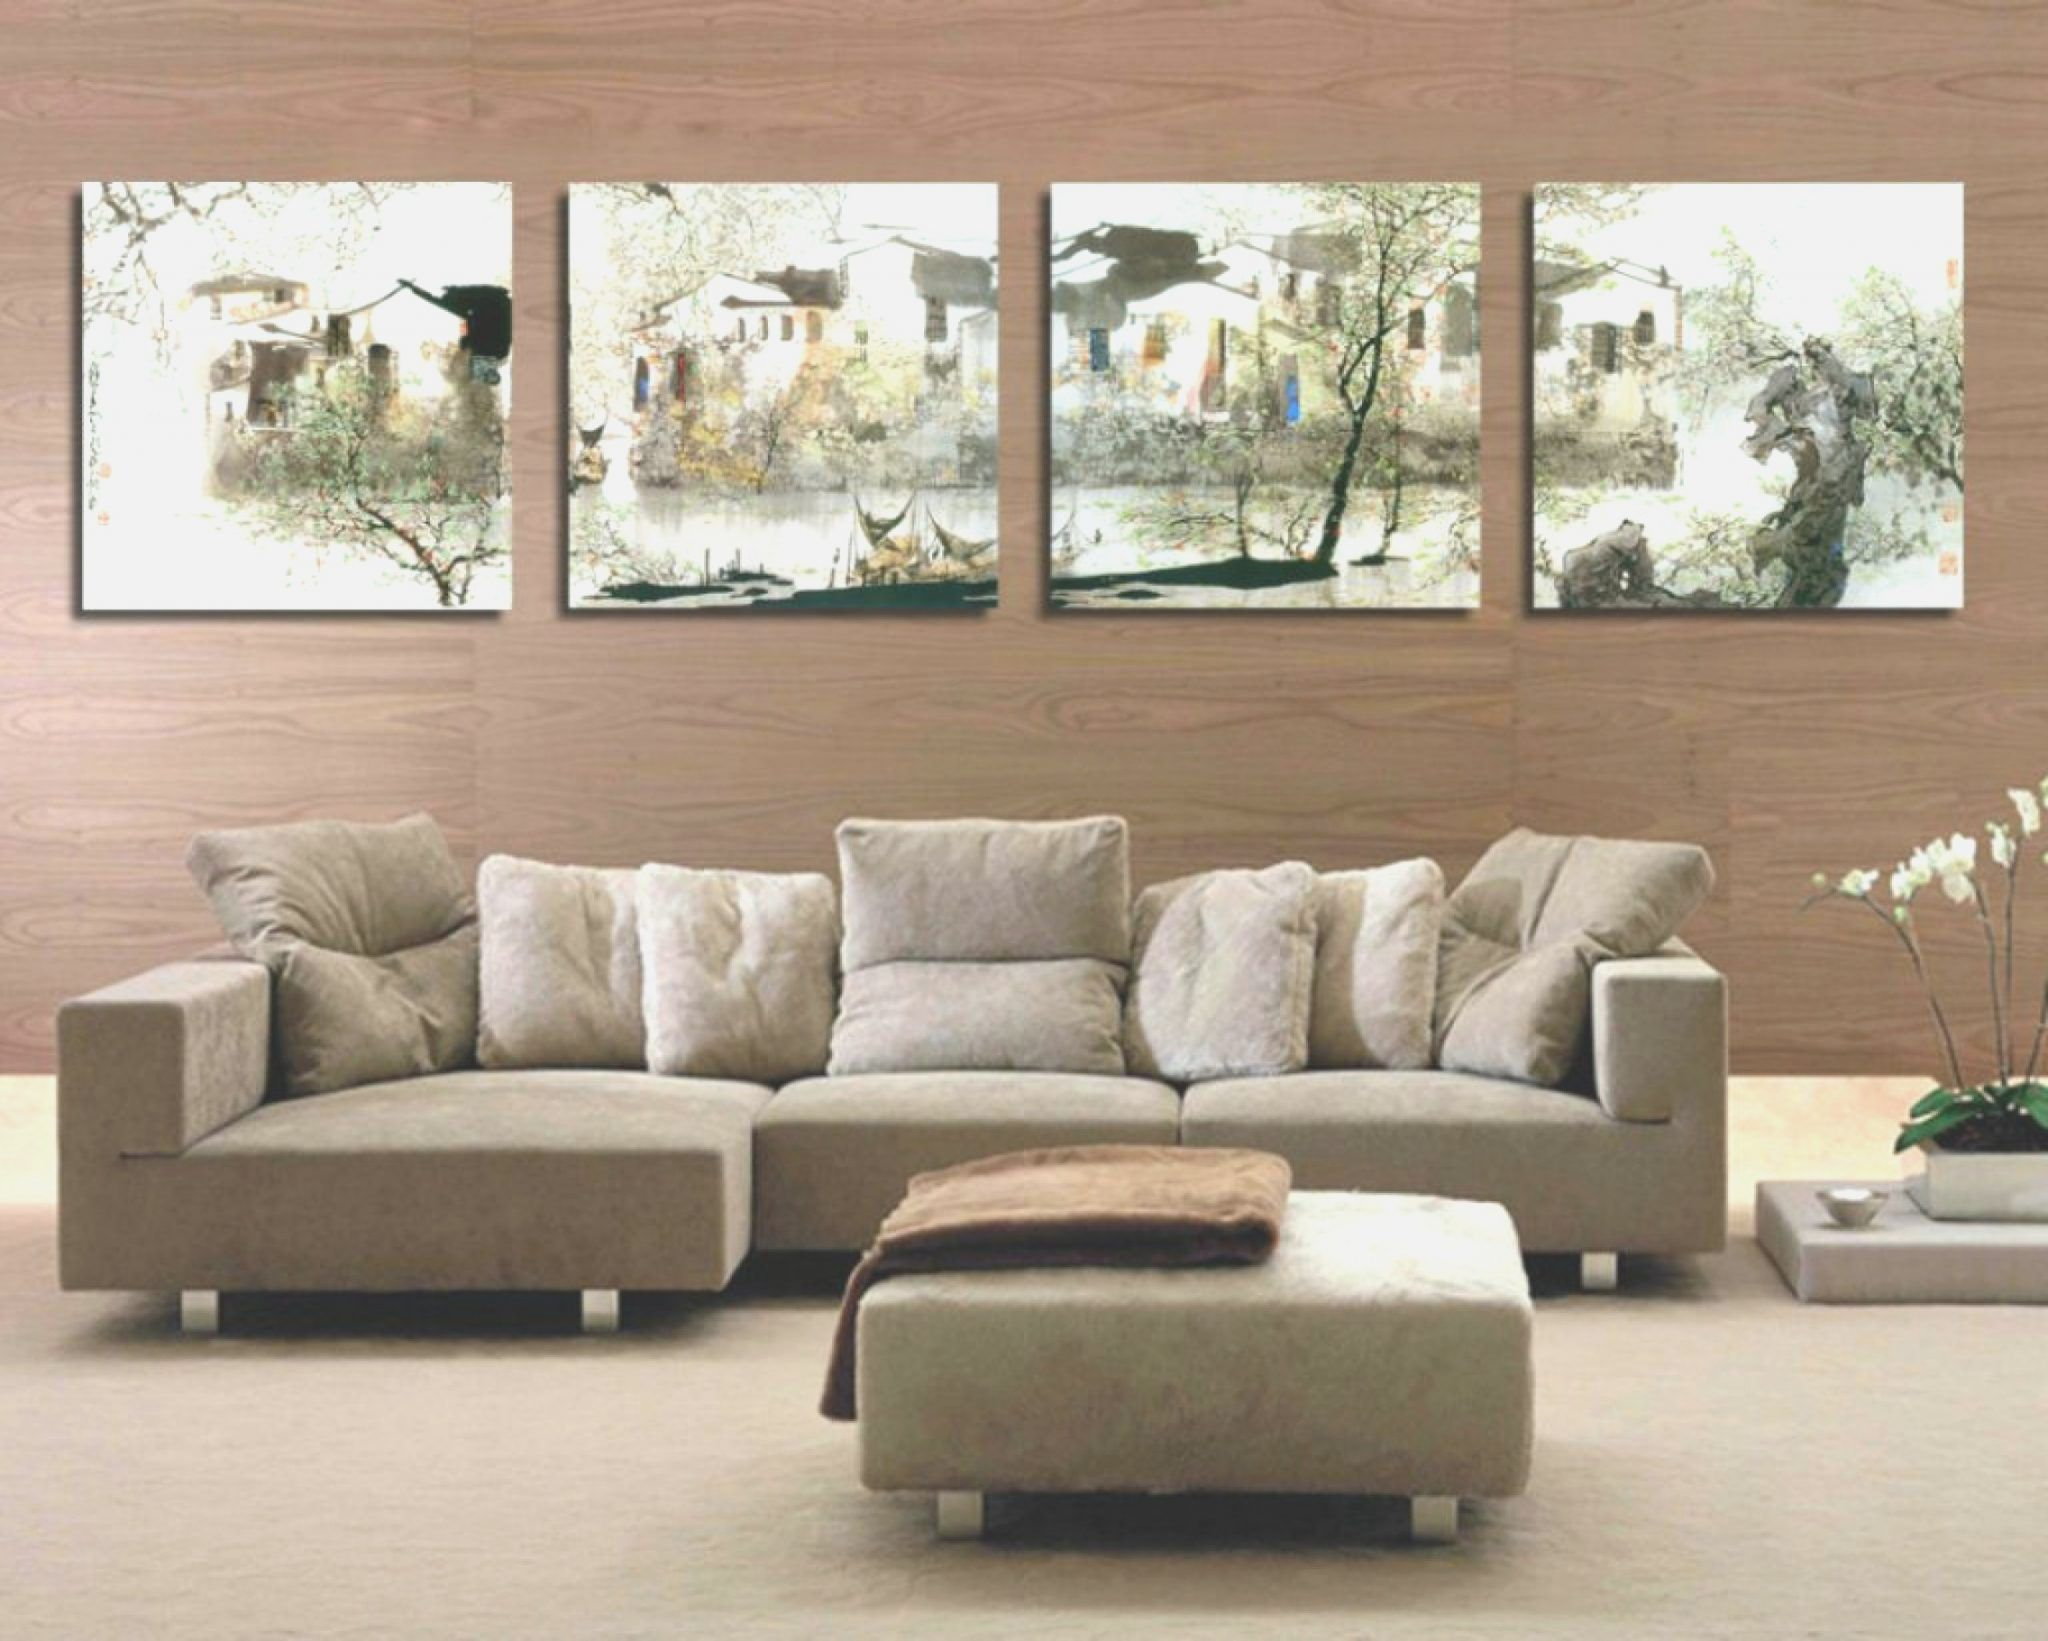 Simple Wall Art Design For Living Room